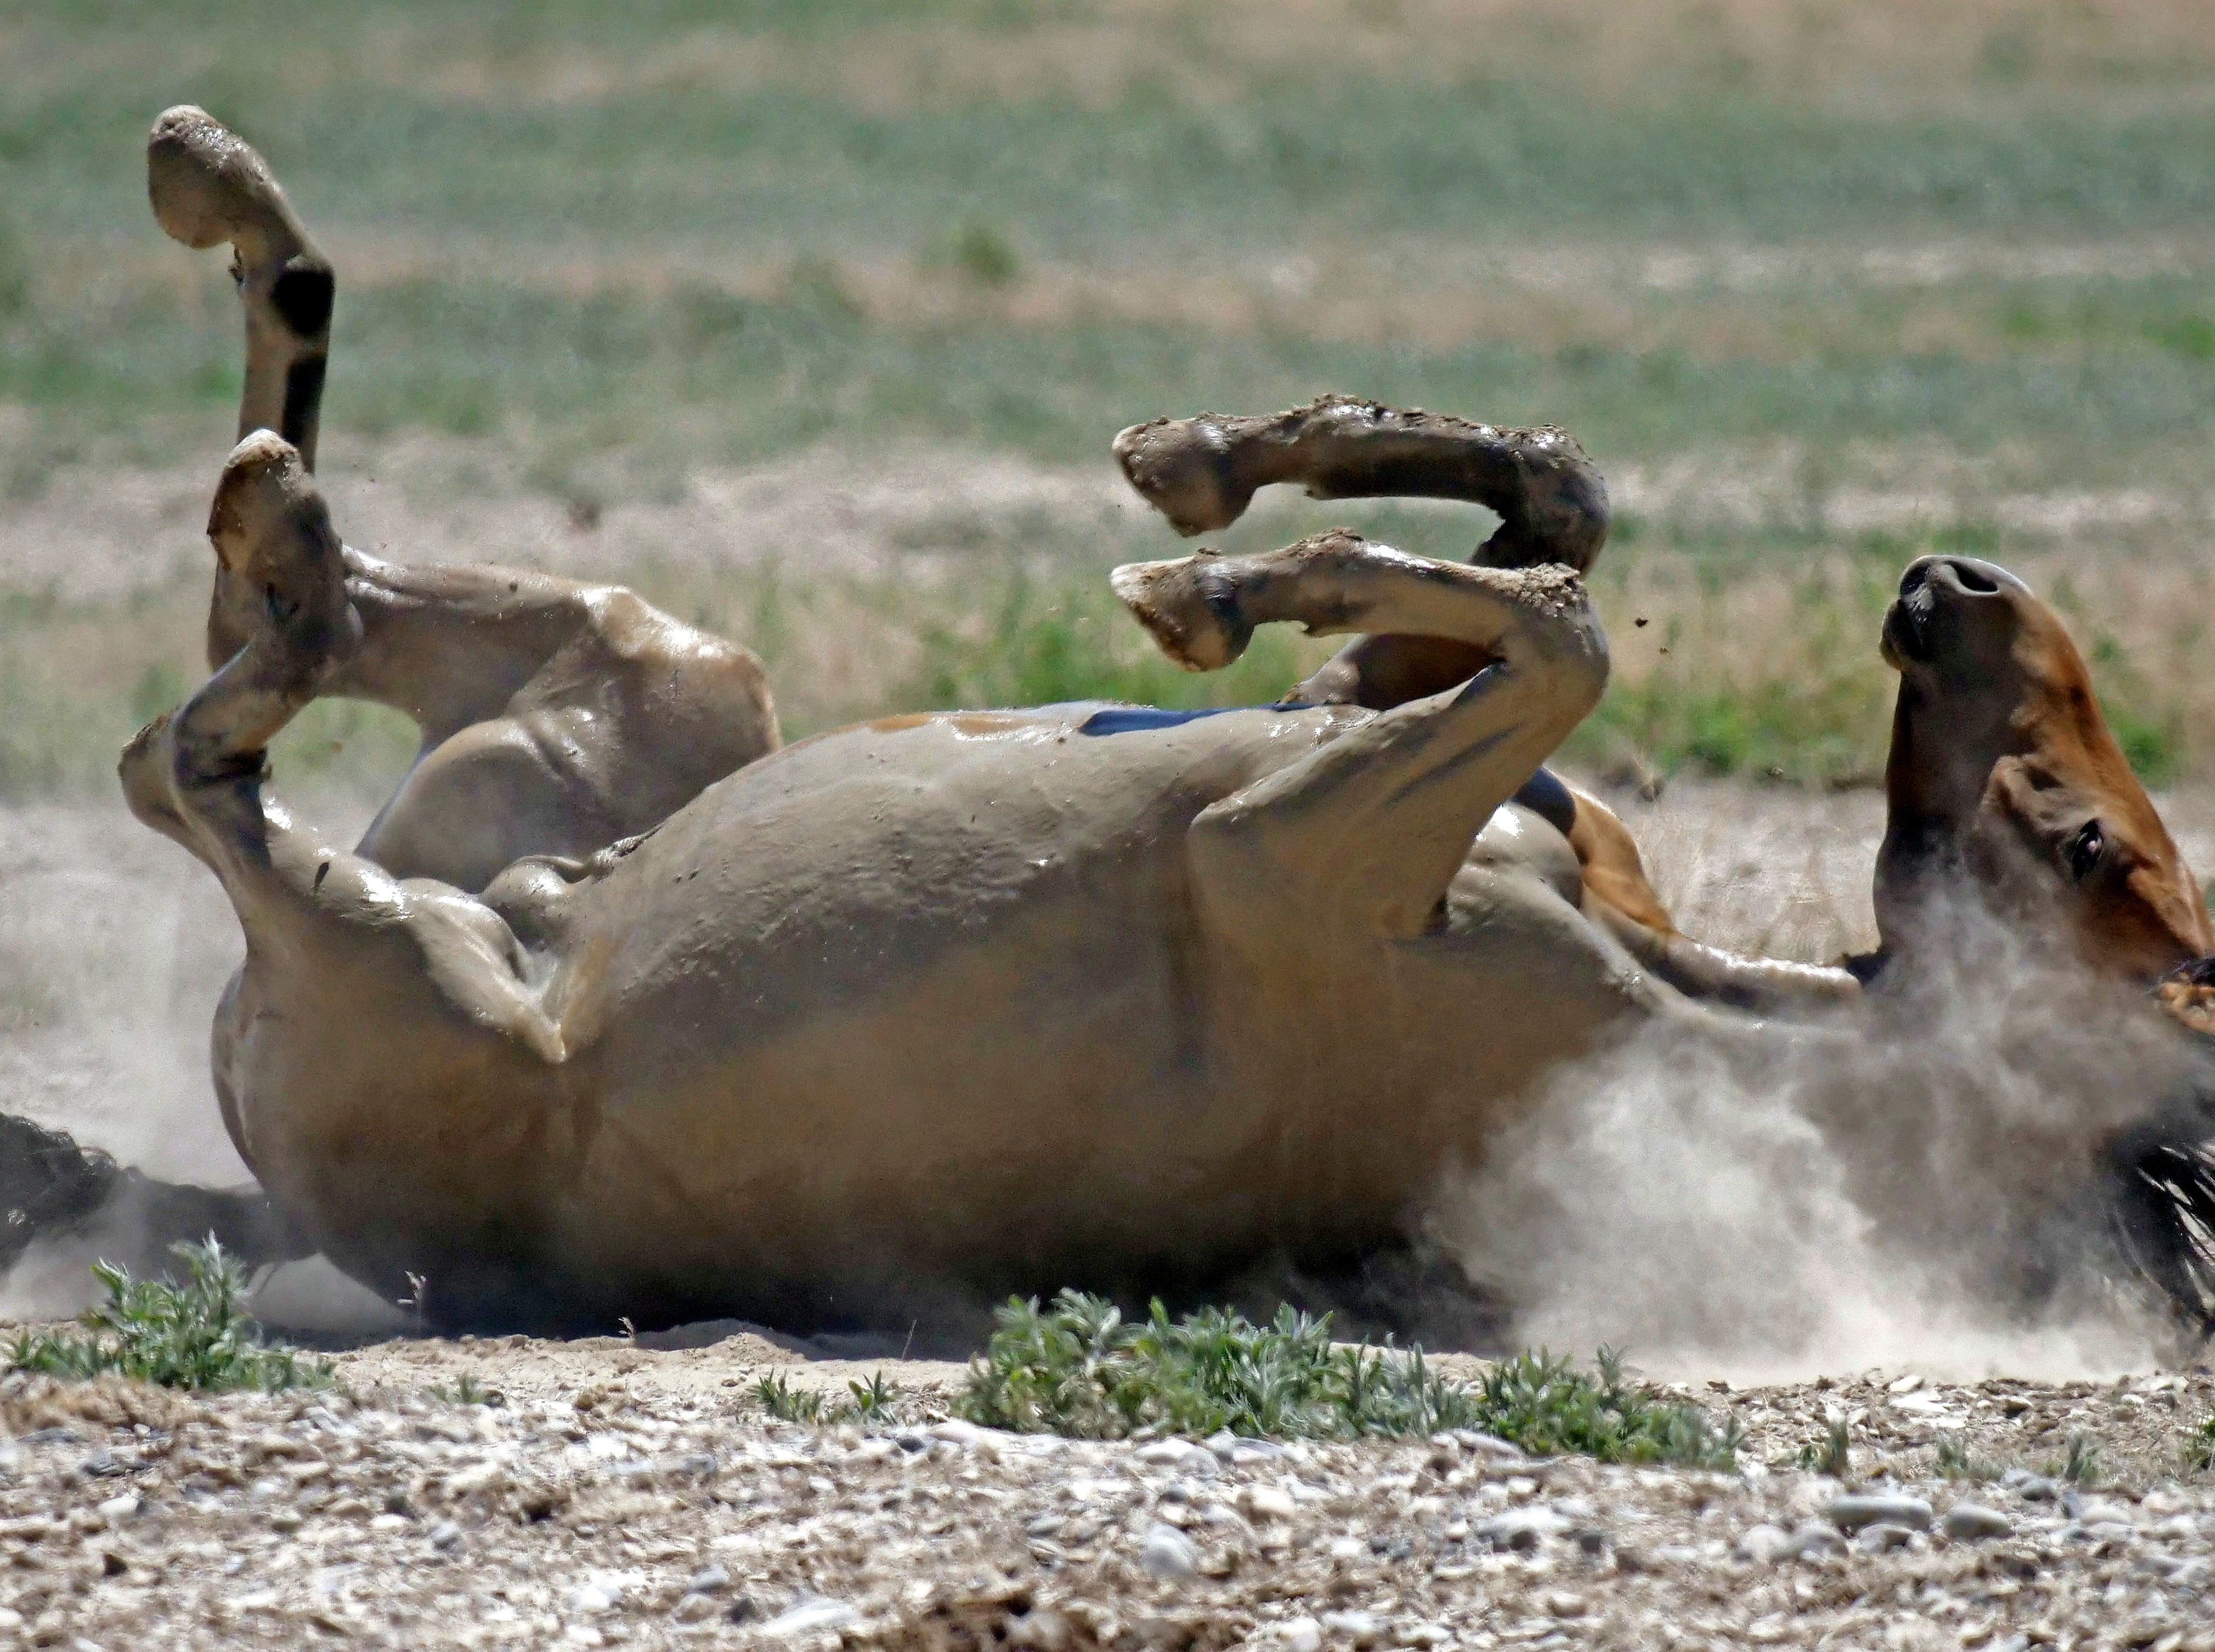 A wild horse rolls in the dust after drinking from a watering hole outside Salt Lake City in this June 29, 2018 photo .